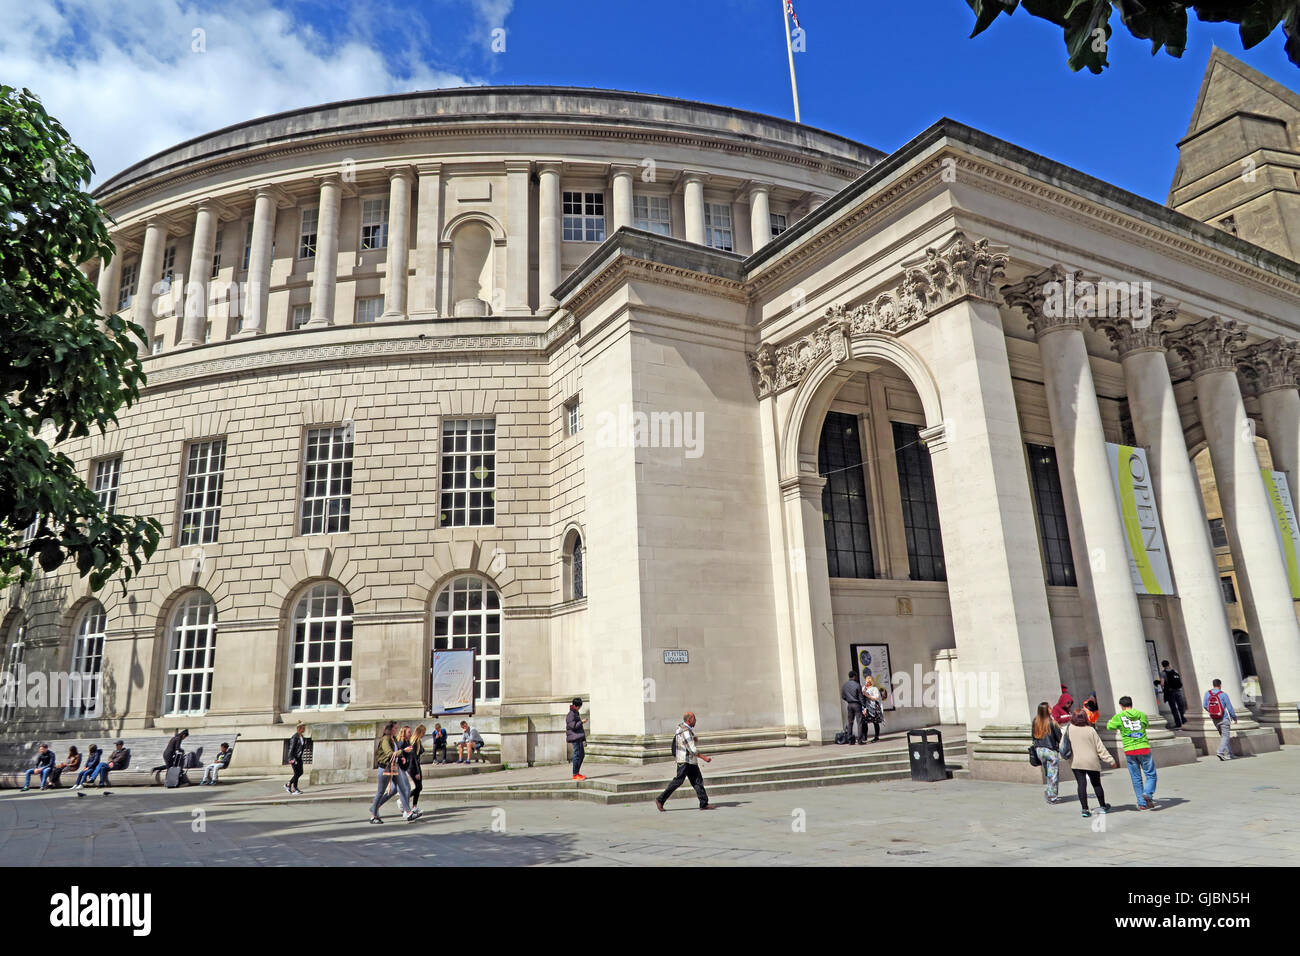 Manchester Central Library, St Peters Square, North West England, UK, M2 5PD - Stock Image